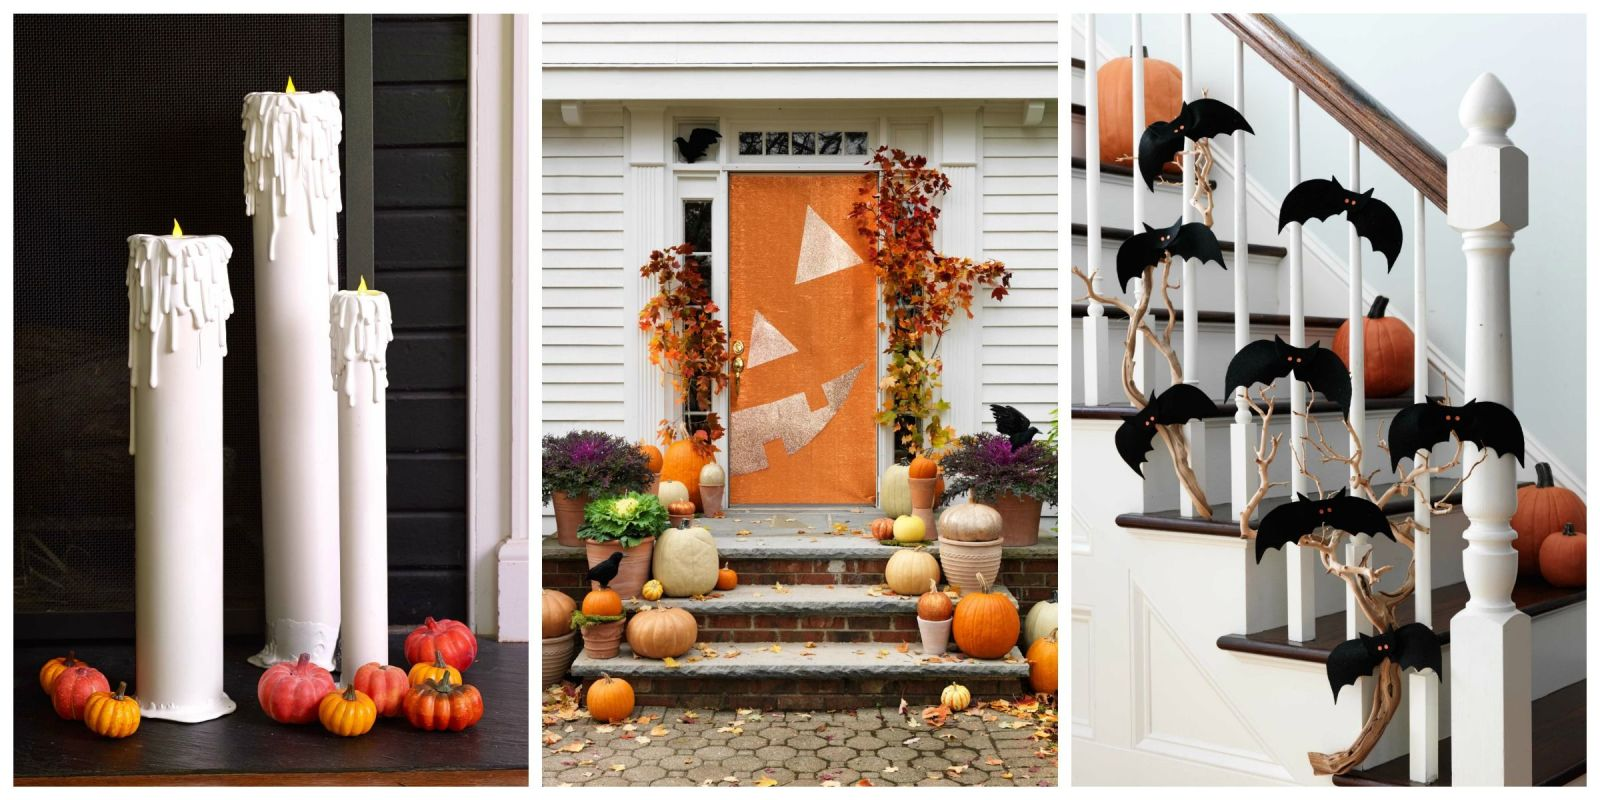 40 easy diy halloween decoration ideas homemade halloween decor projects - Homemade Halloween House Decorations